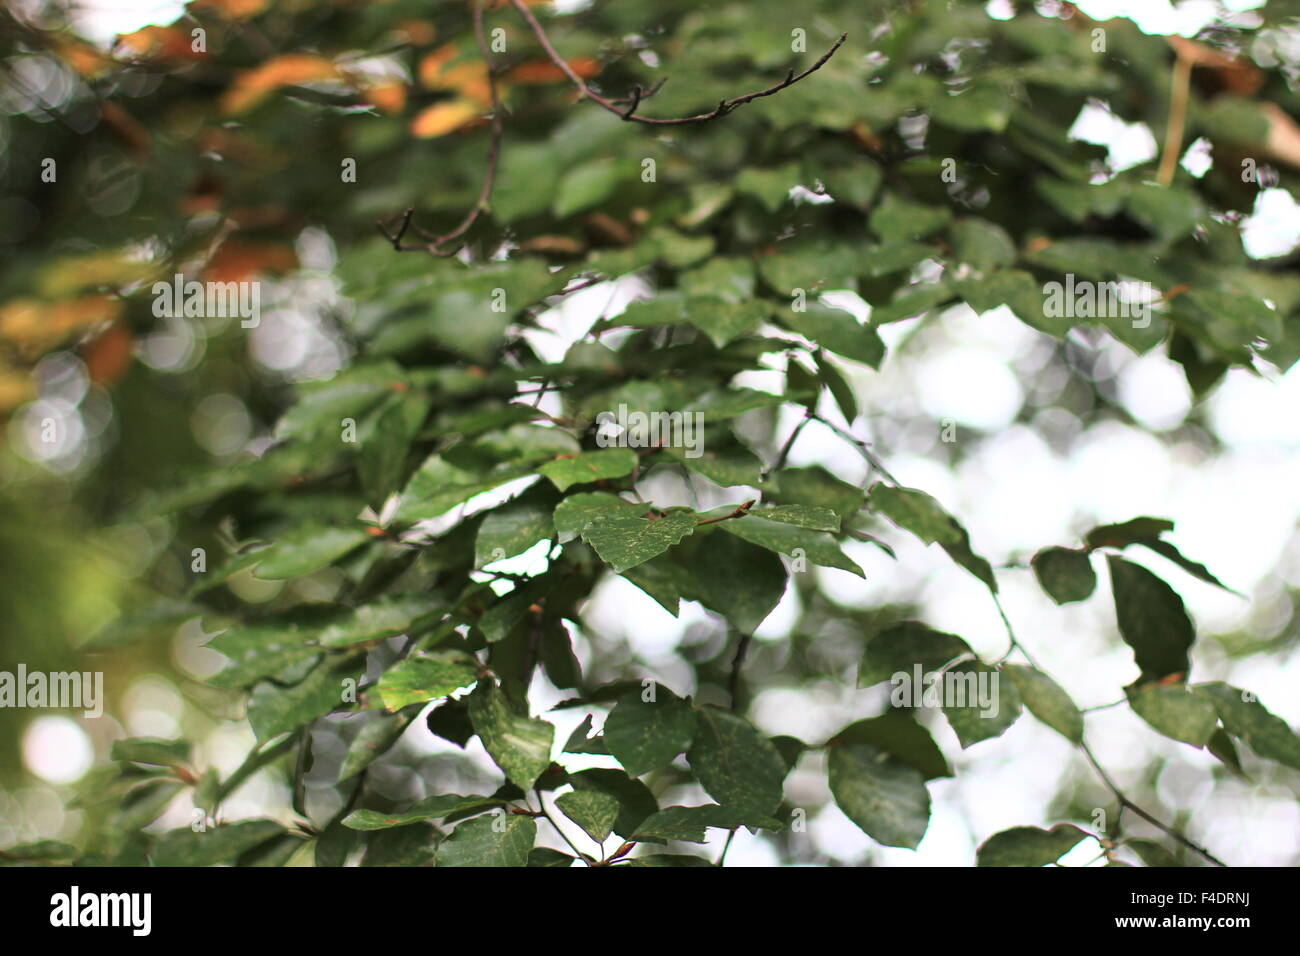 Green leaves at eye level. Stock Photo